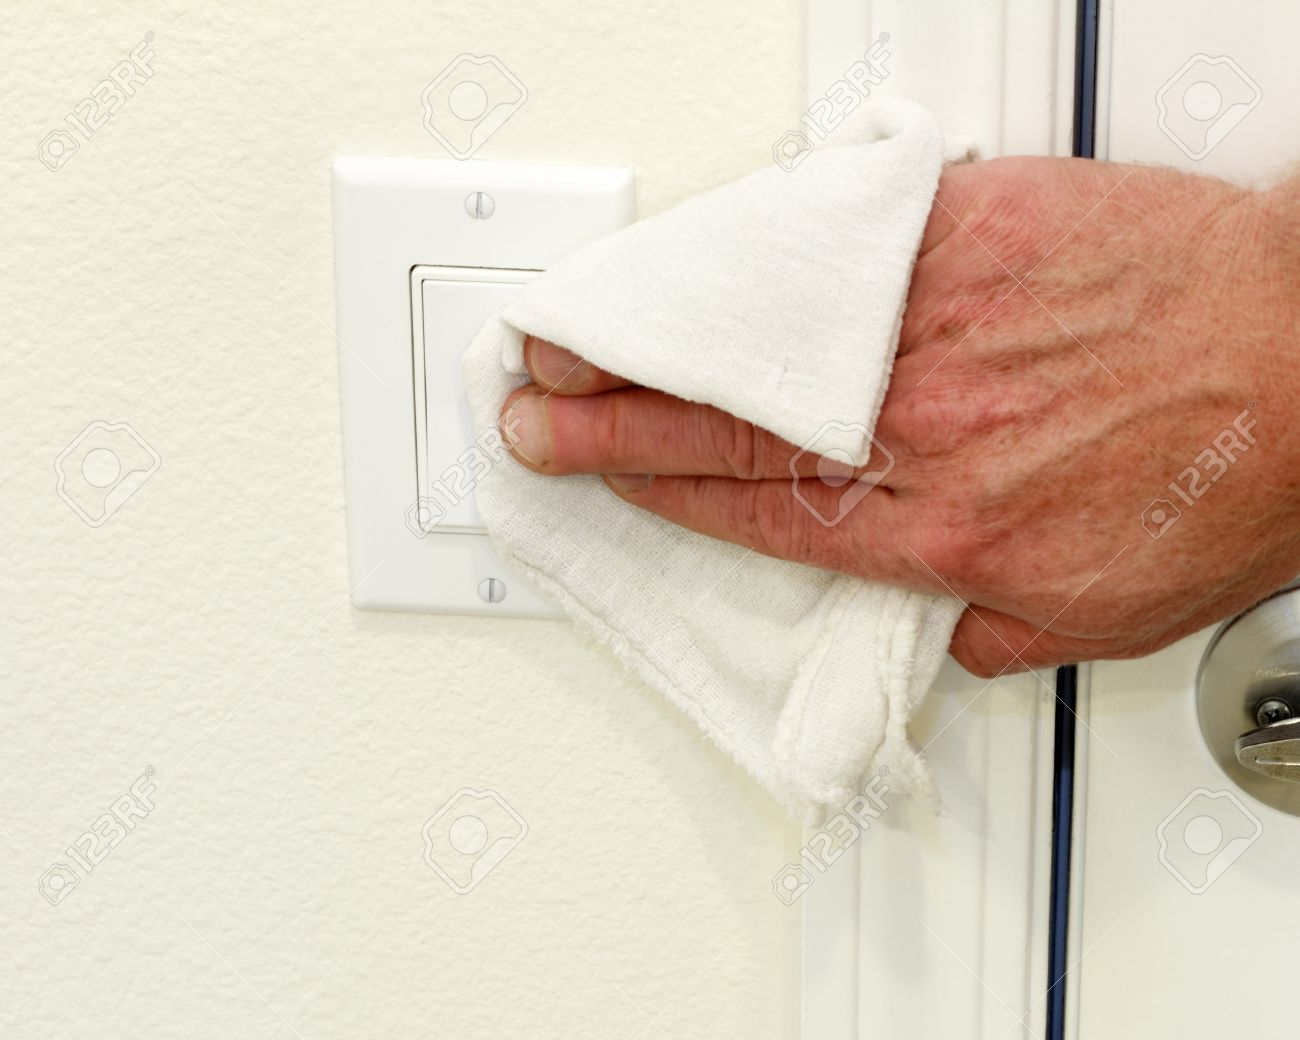 Hand Cleaning A White Home Kitchen Flat Panel Light Switch With A White  Cotton Cloth Dust